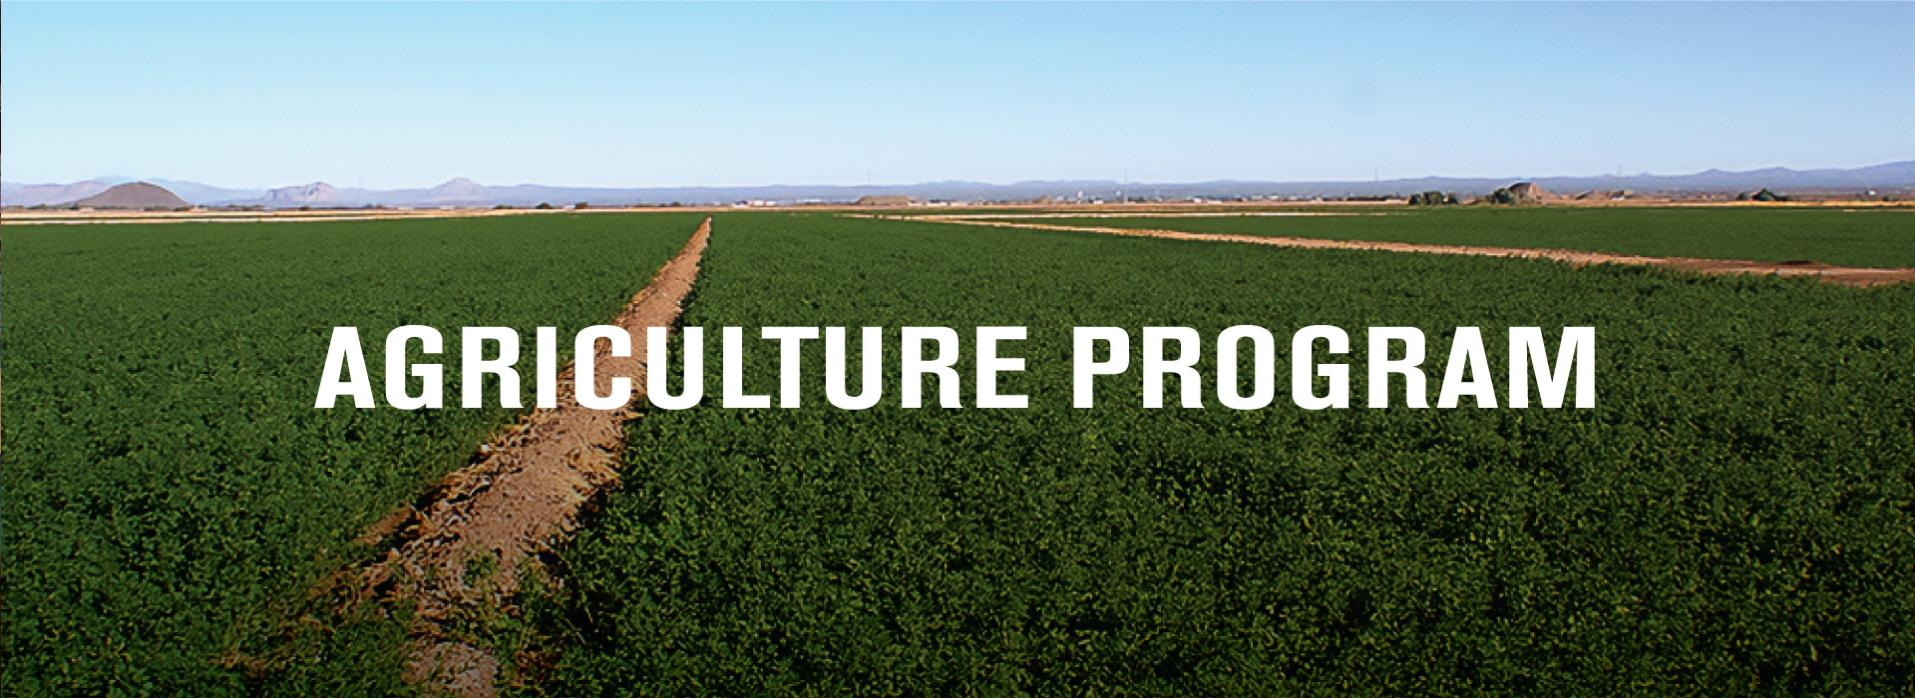 Agriculture Program banner image. The image is a farm field full or crops.